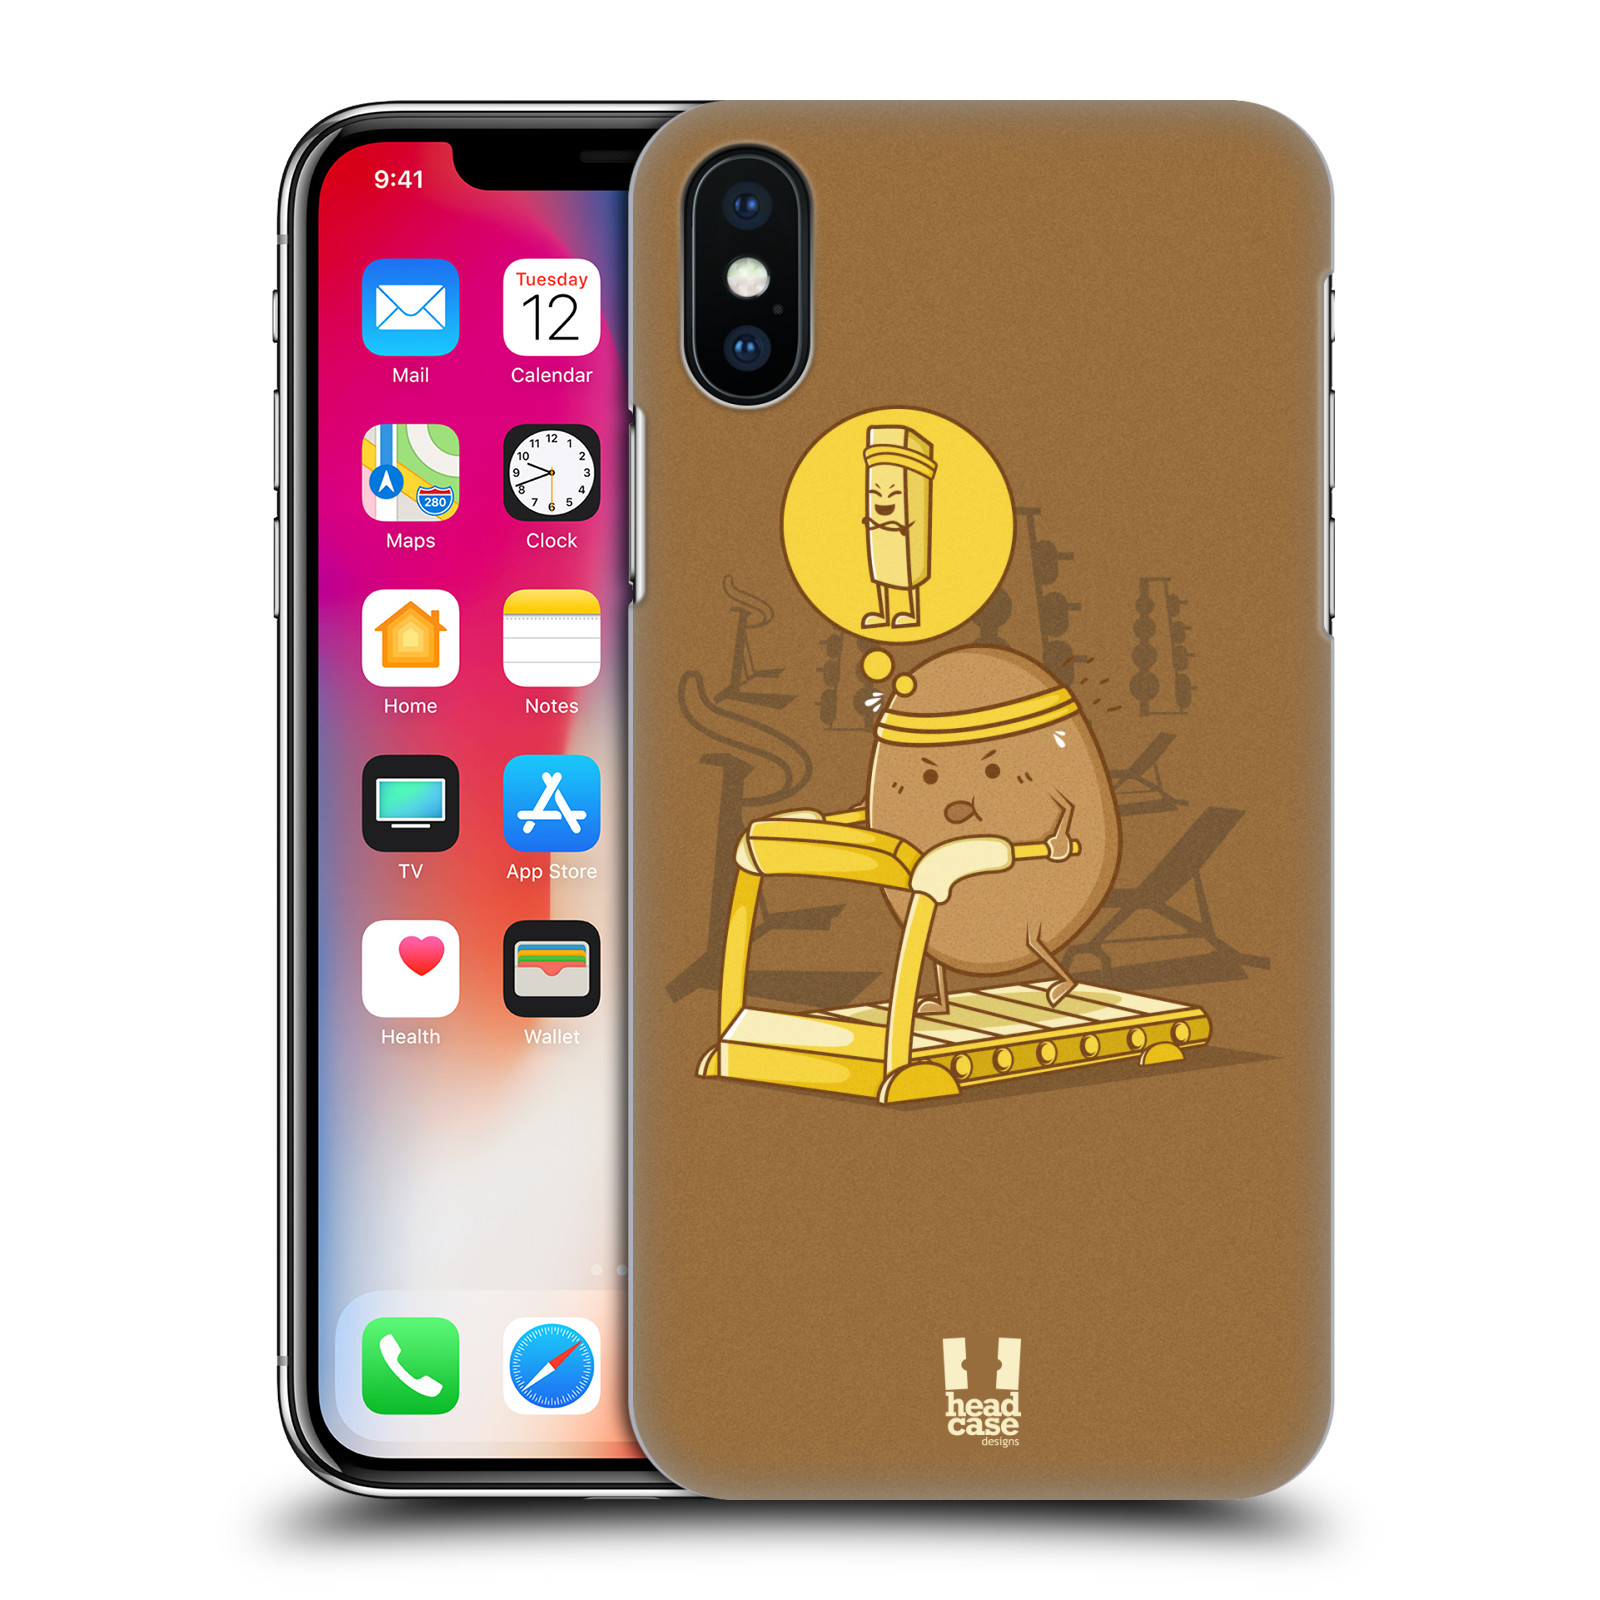 HEAD-CASE-DESIGNS-WORK-IT-OUT-HARD-BACK-CASE-FOR-APPLE-iPHONE-PHONES